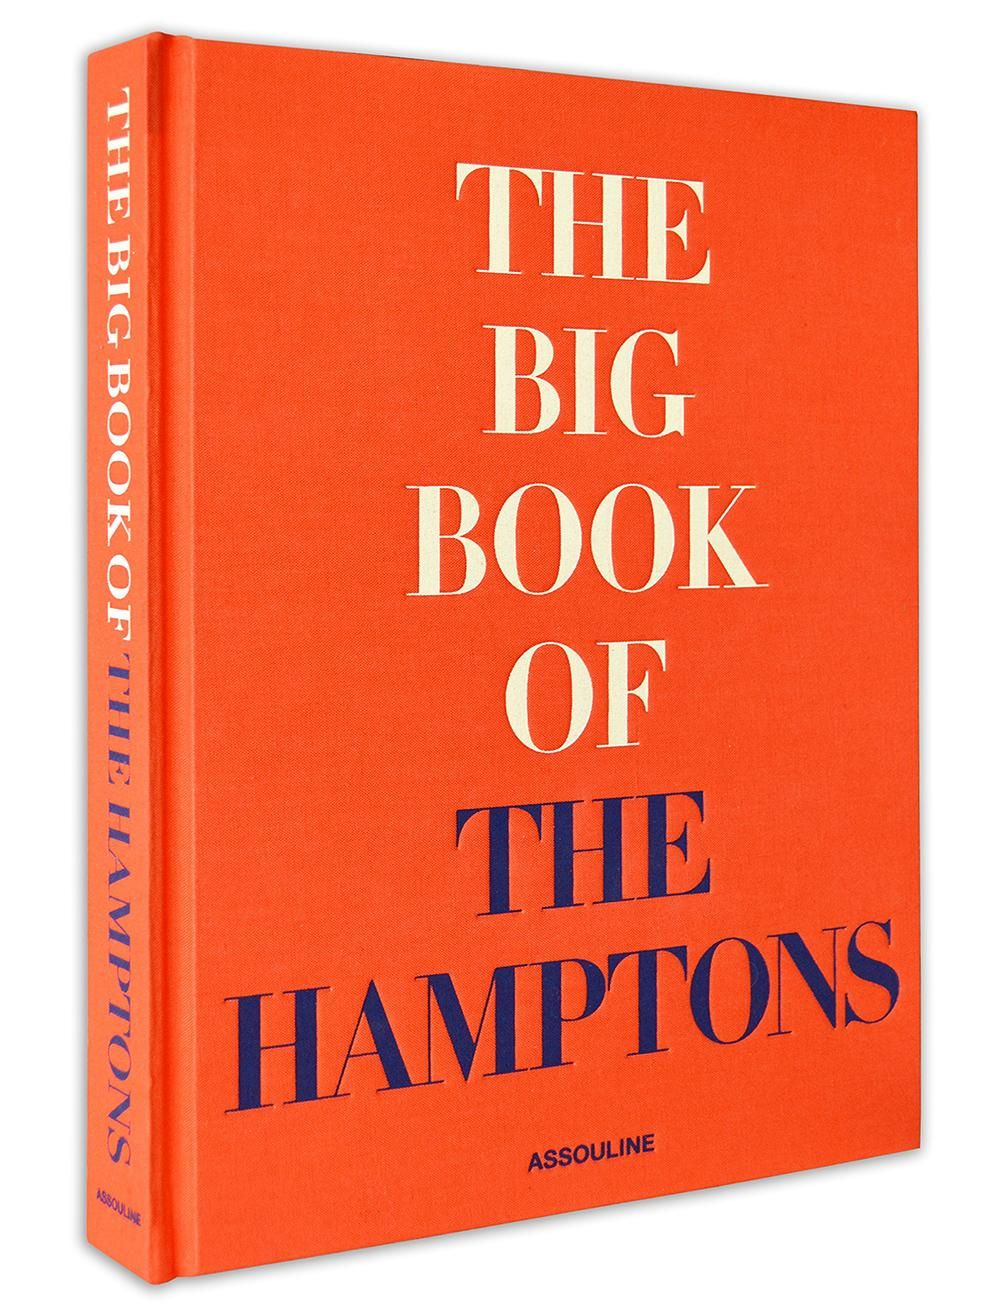 Get Gifting Coffee Table Books The Hamptons Big Book Assouline Books